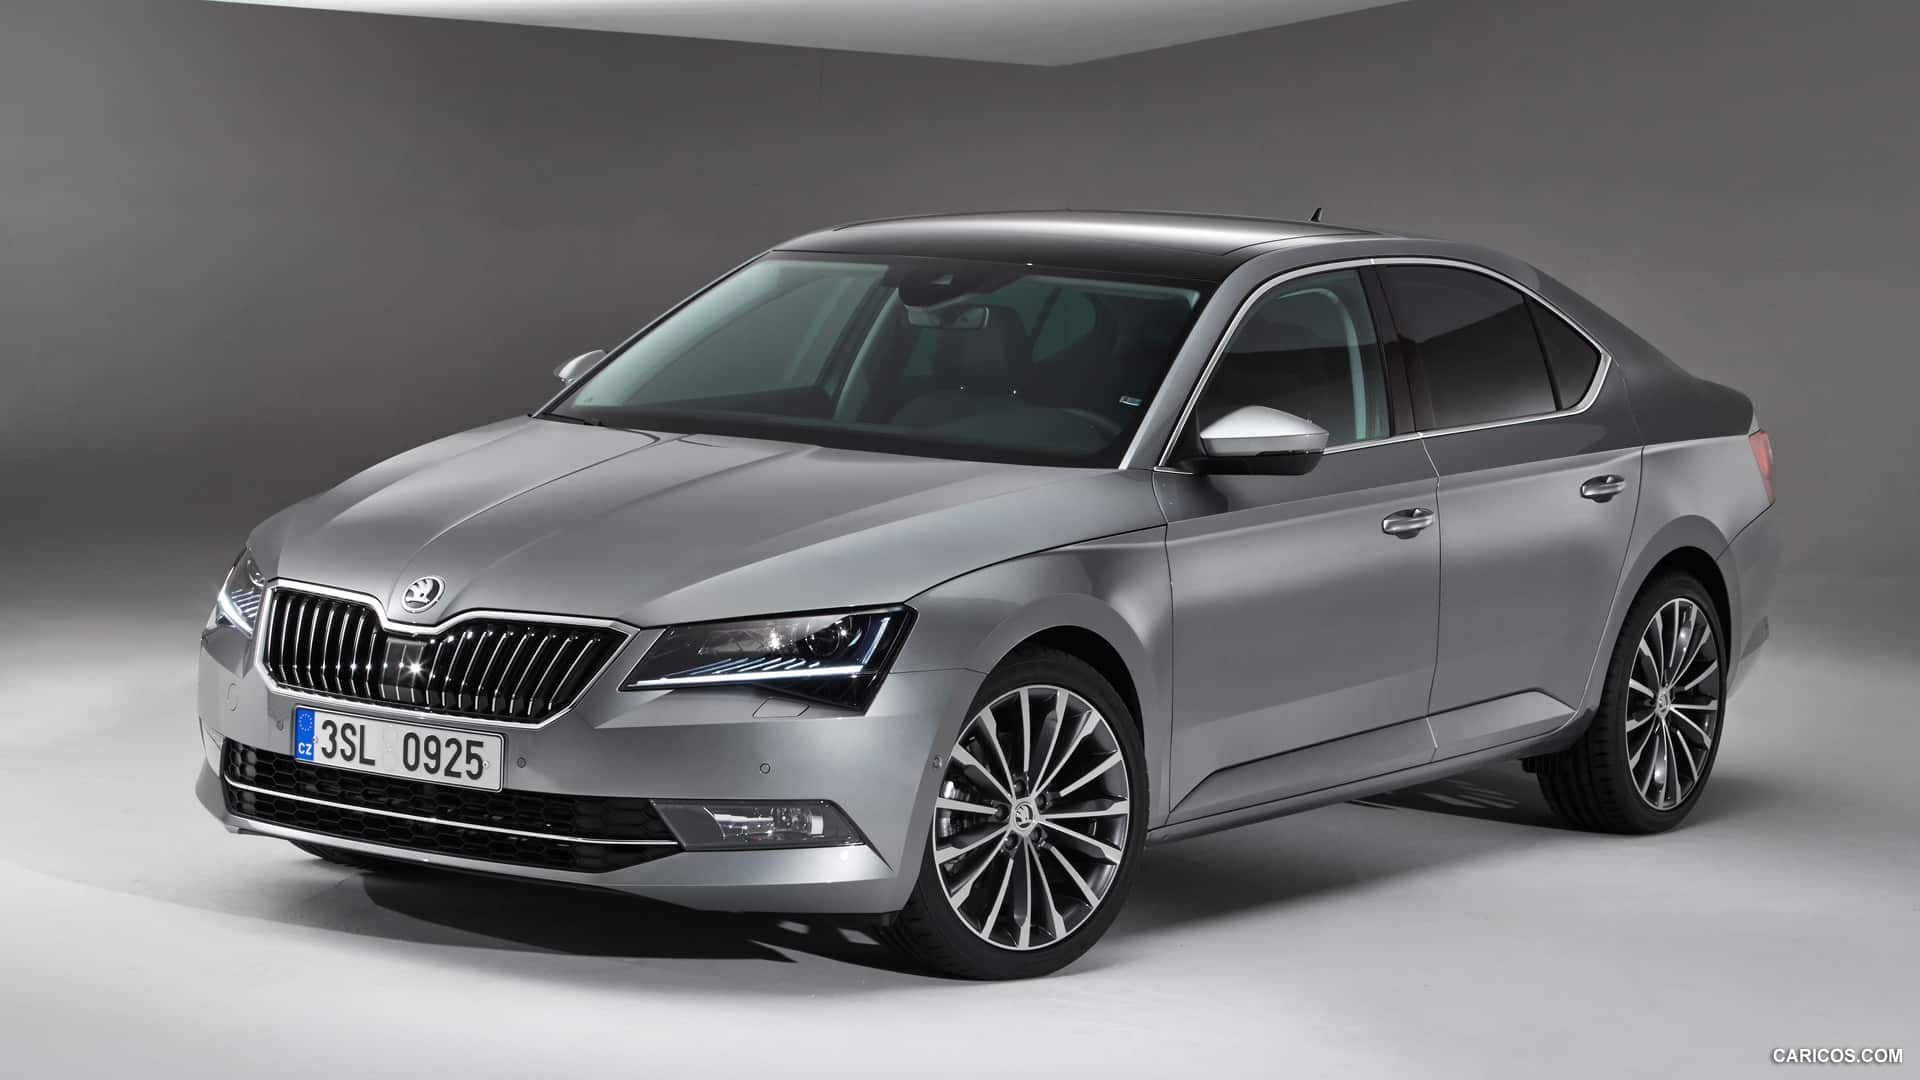 Skoda to equip its flagship model Superb with plug-in hybrid technology: scheduled for 2019 introduction